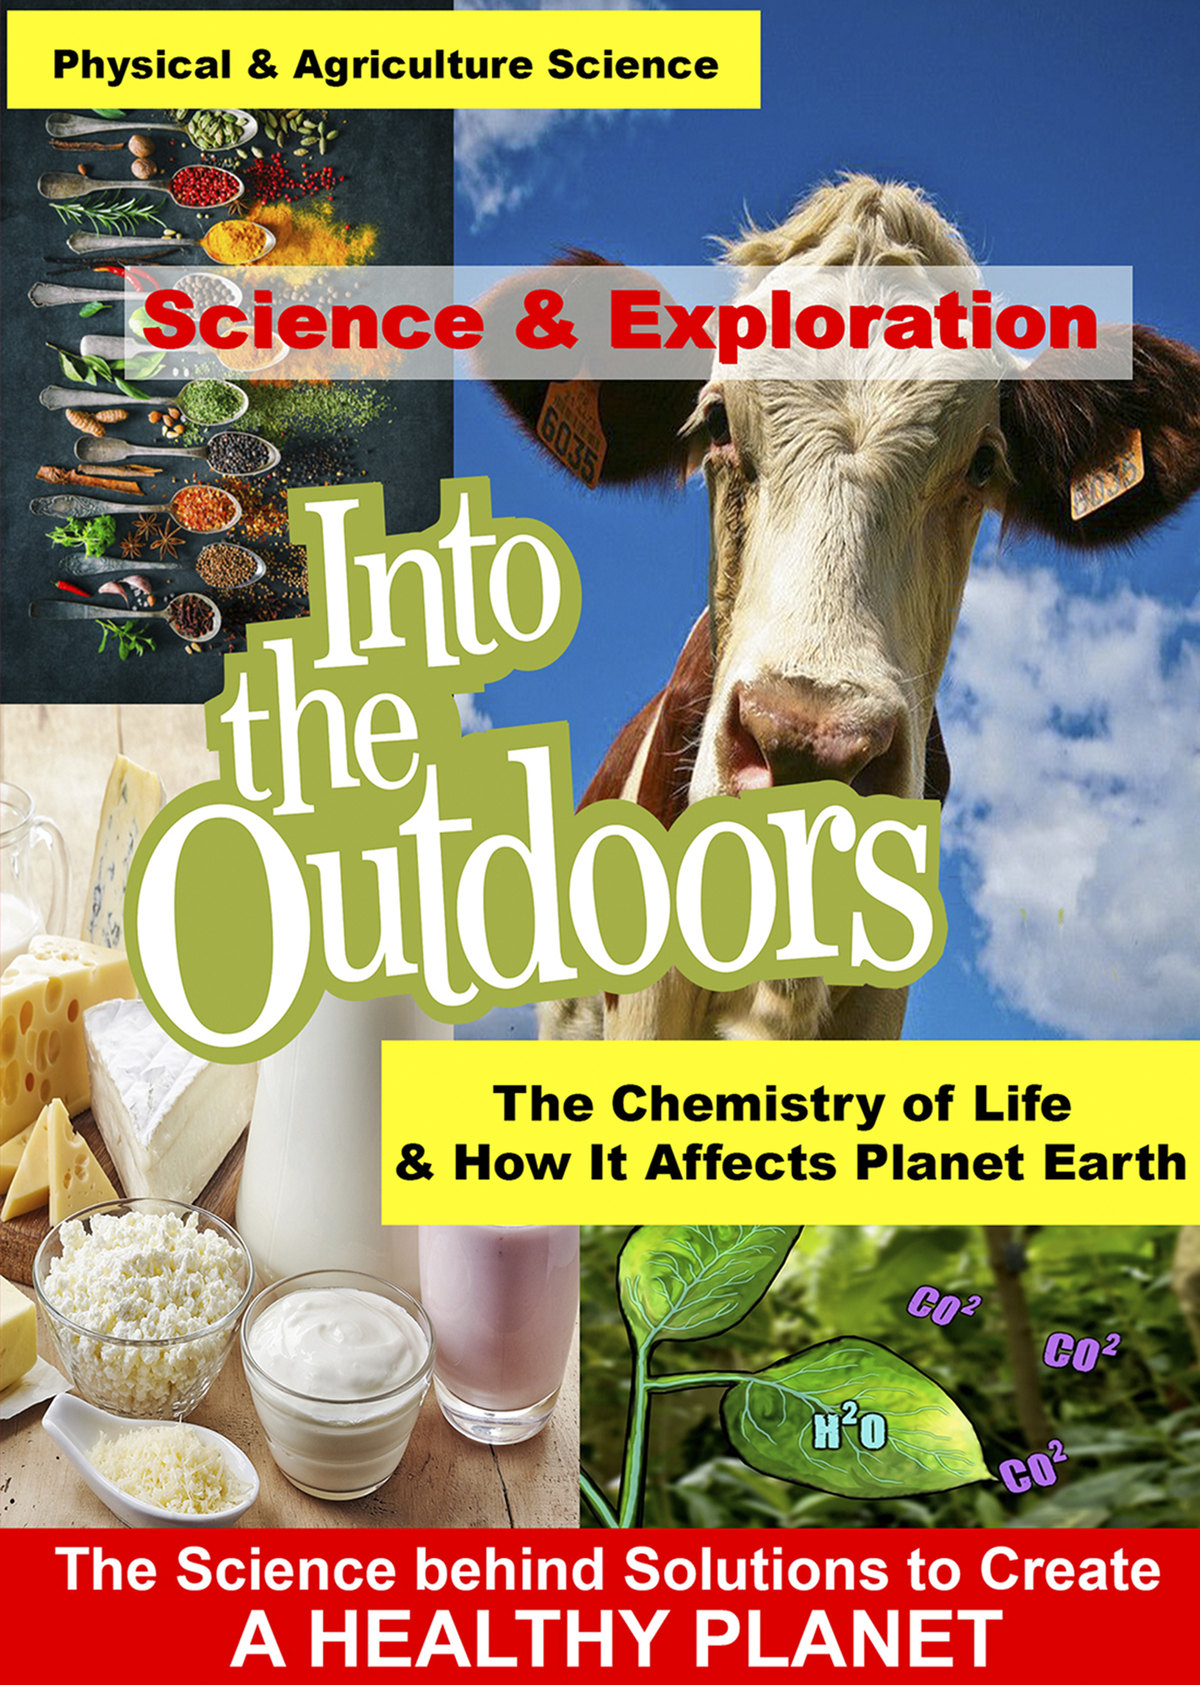 K4993 - The Chemistry of Life & How it Affects Everything on Planet Earth